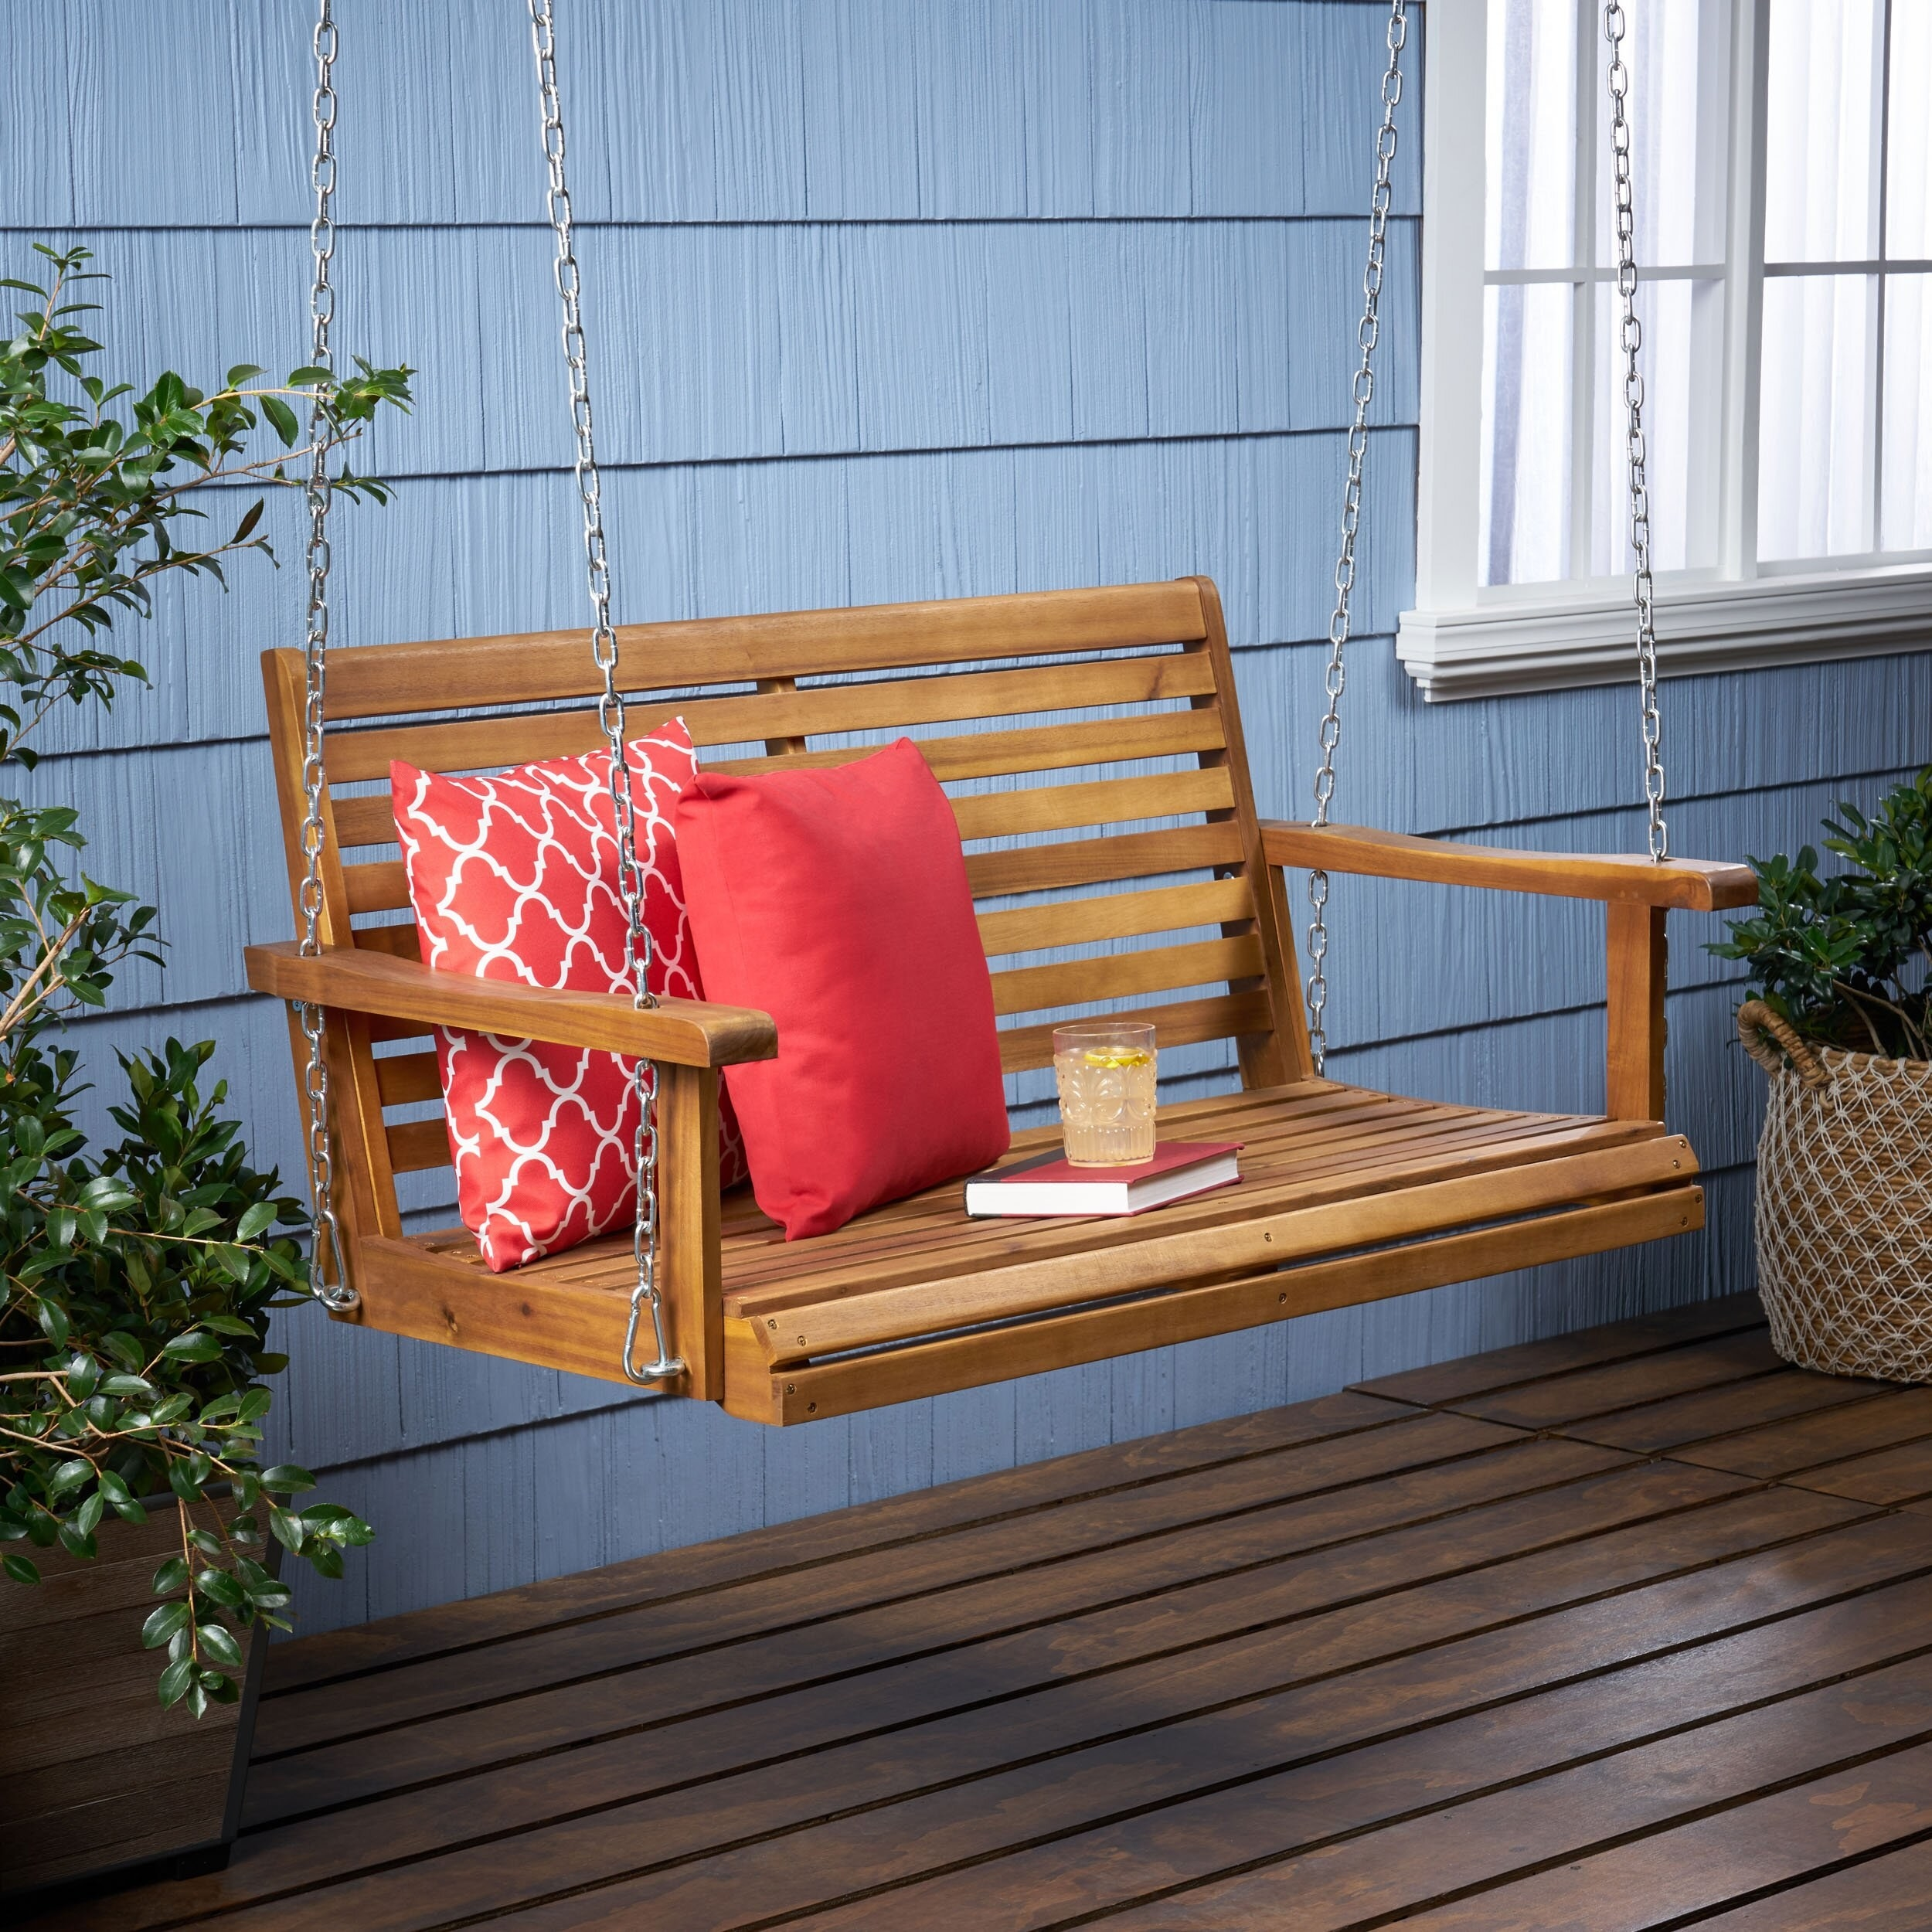 A medium wood porch swing for two people that hangs from metal chains